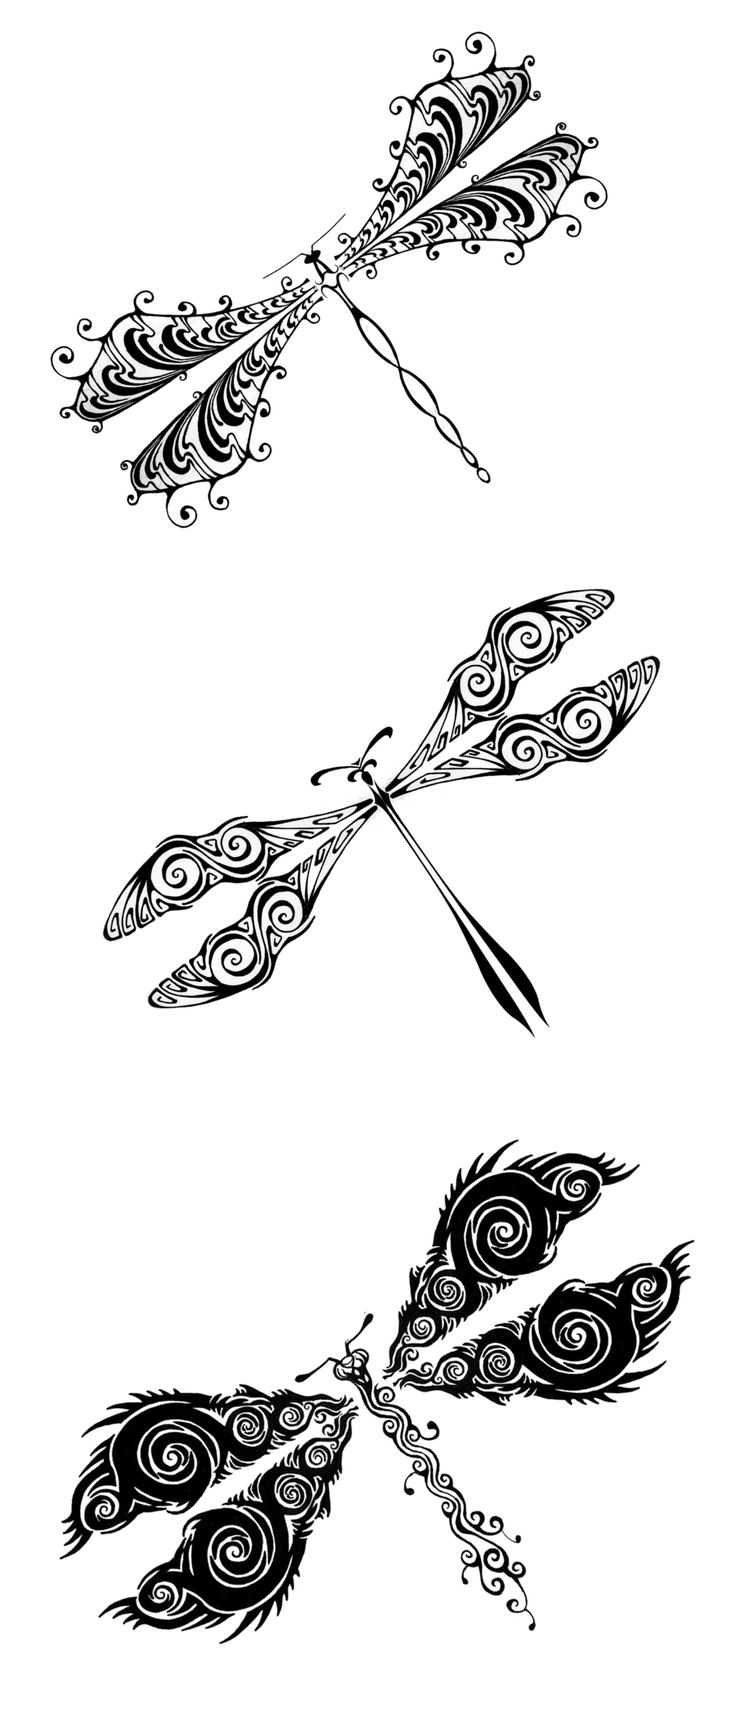 784 best dragonfly images on pinterest dragonfly drawing